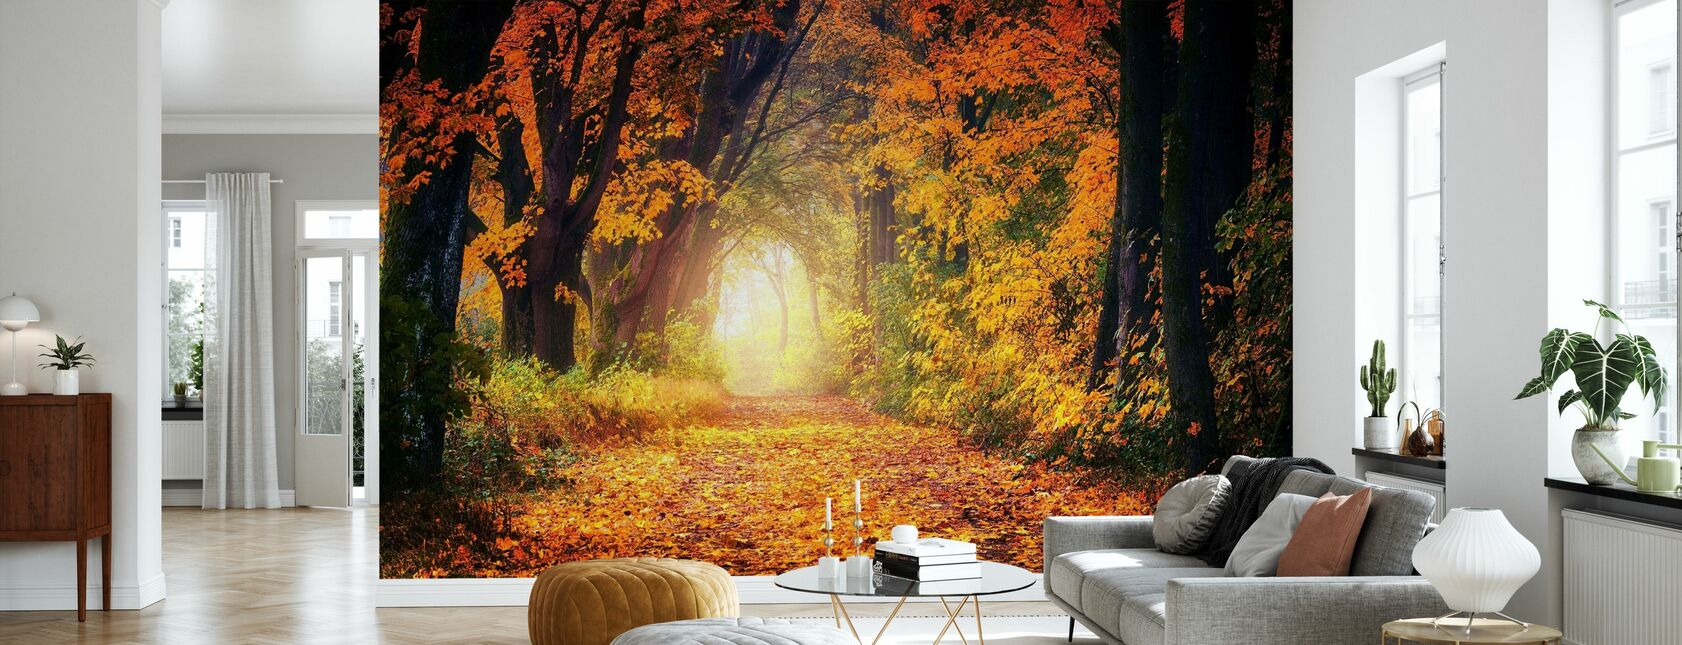 Forest Path - Wallpaper - Living Room